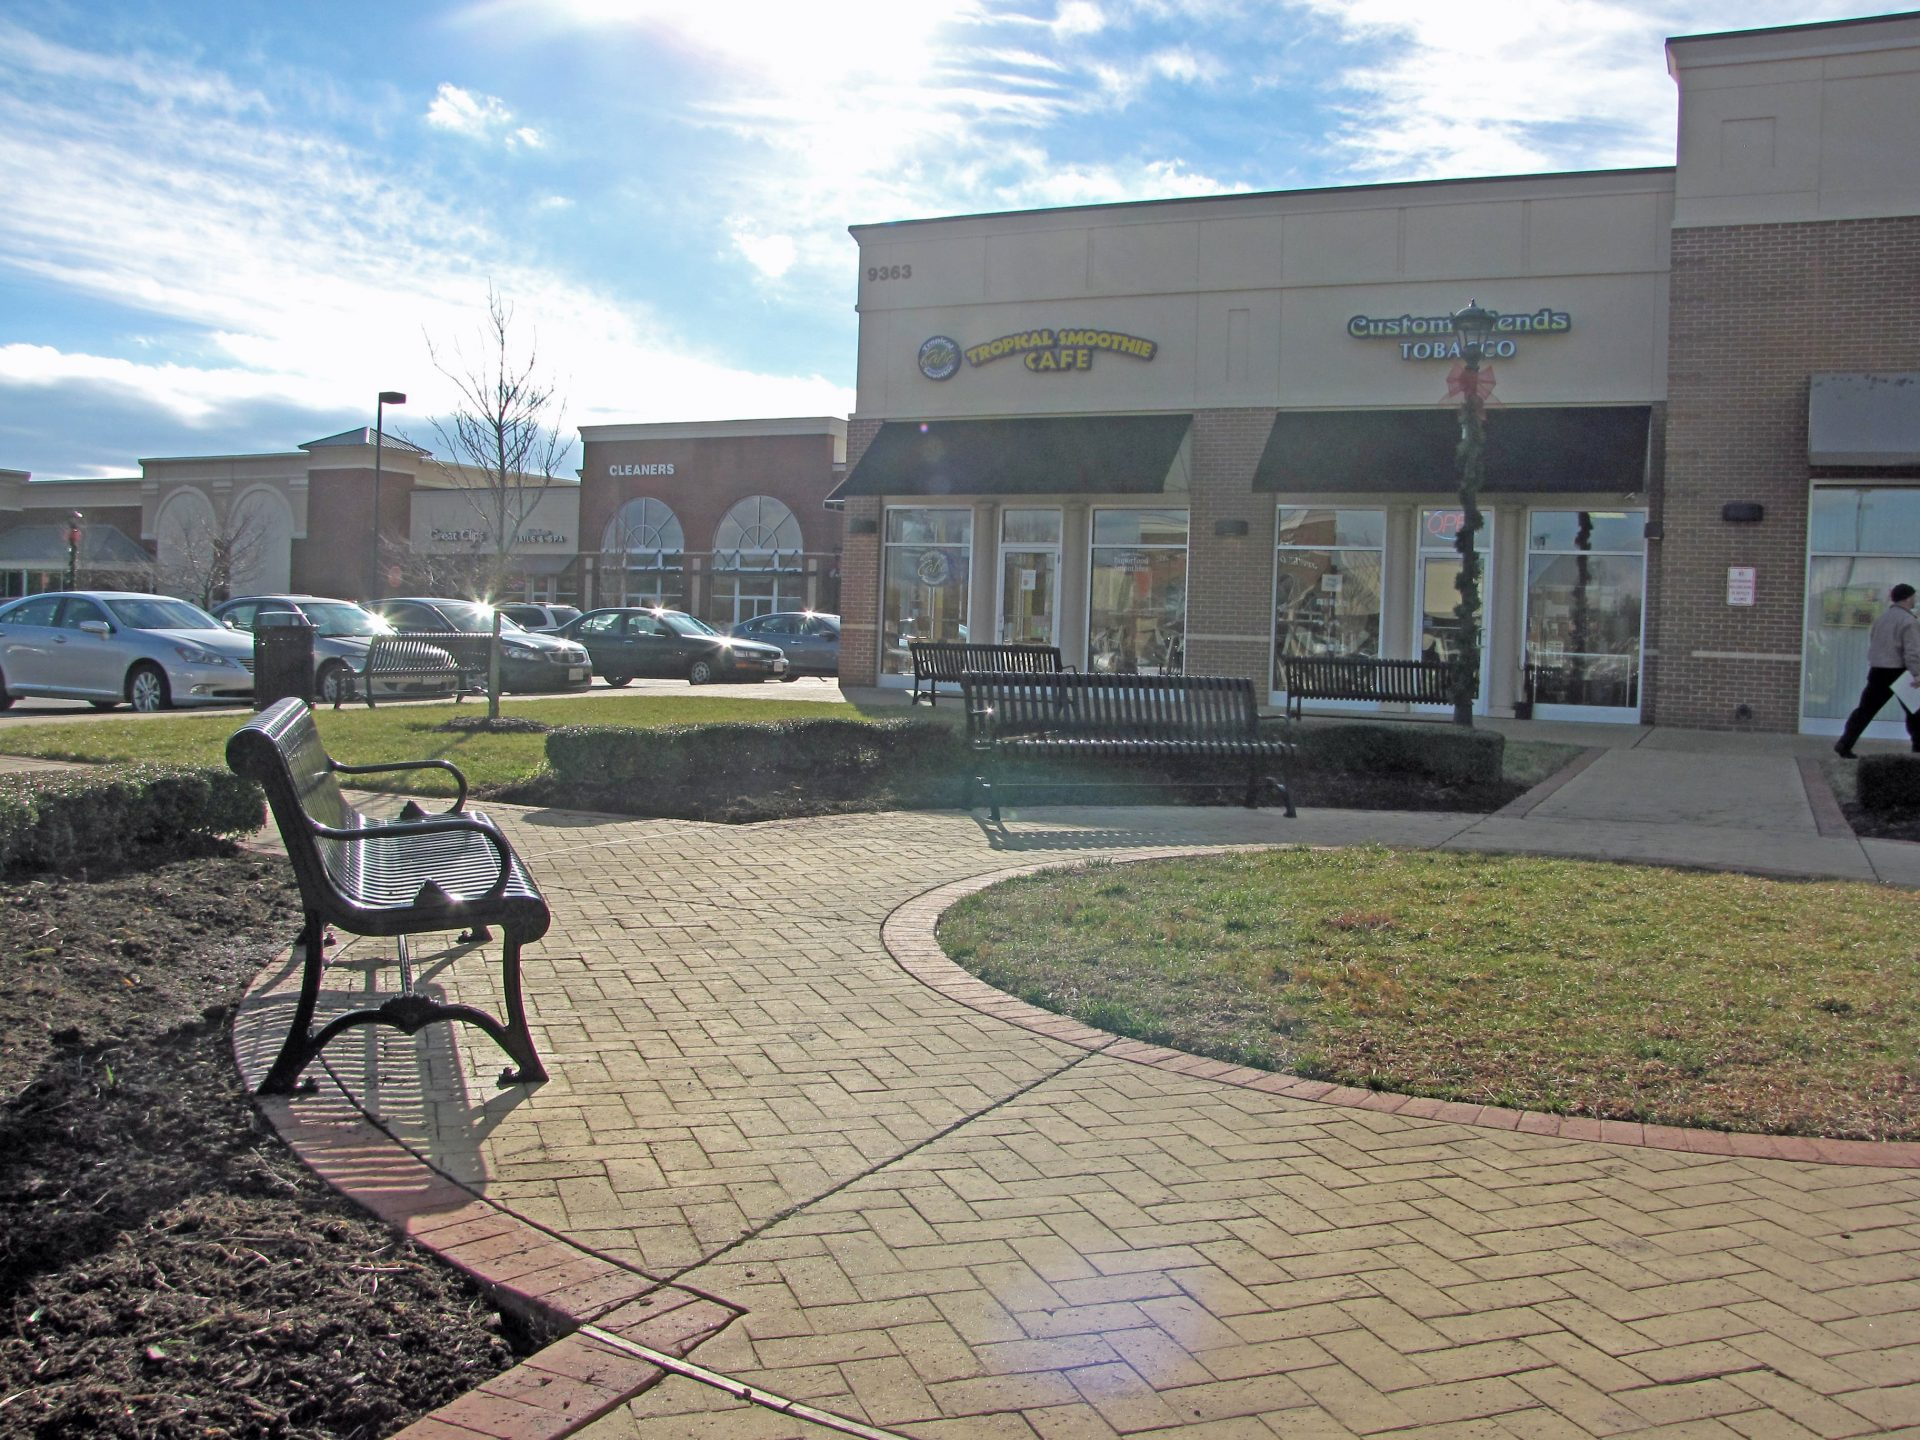 Rutland in Hanover County, VA - Retail Commons